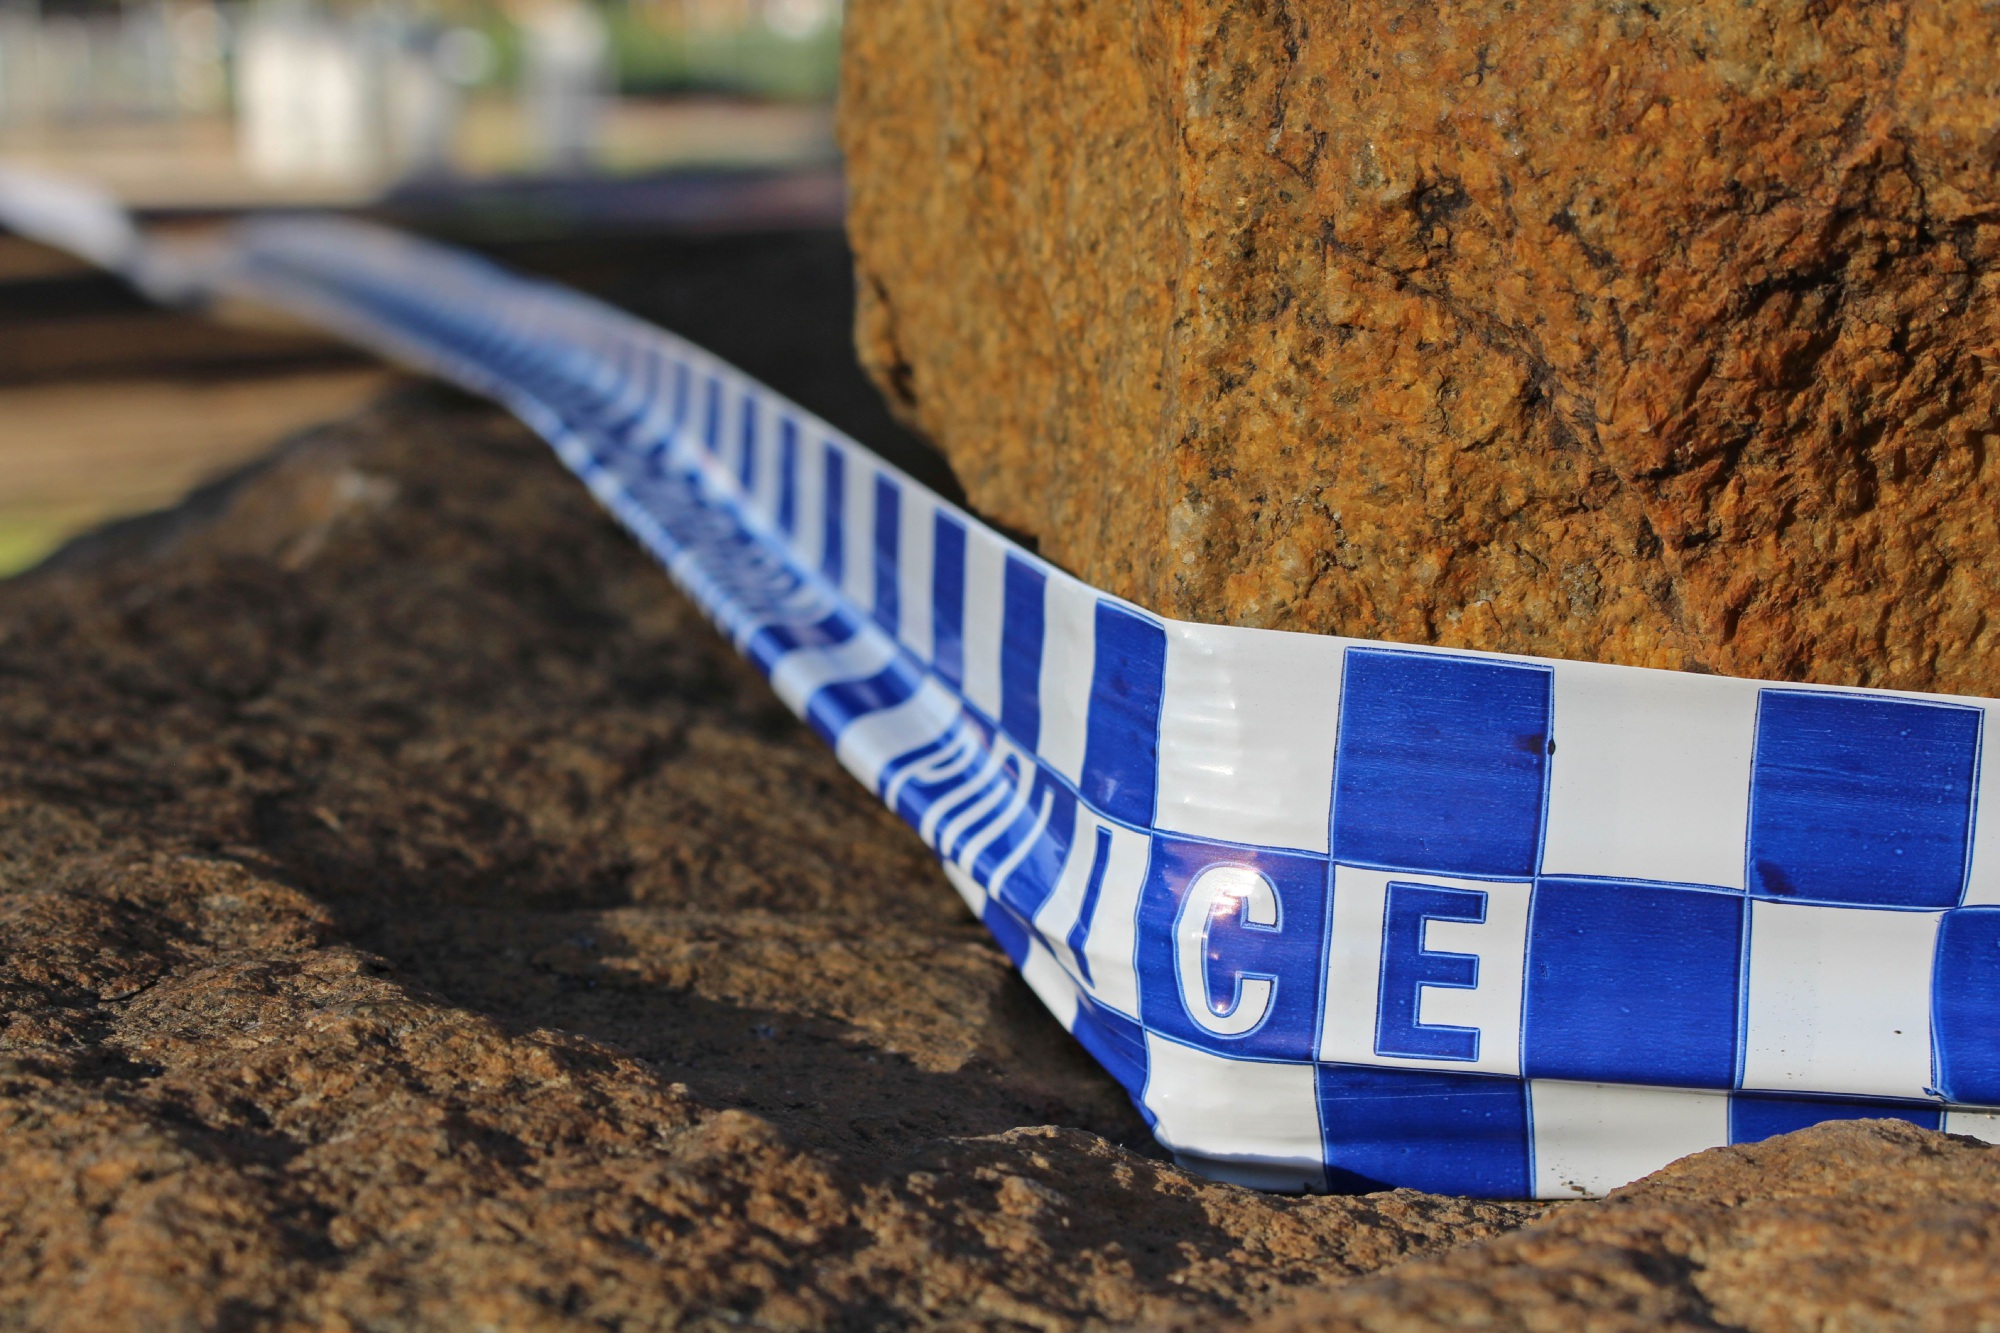 Man charged with burglaries, including Mandurah businesses